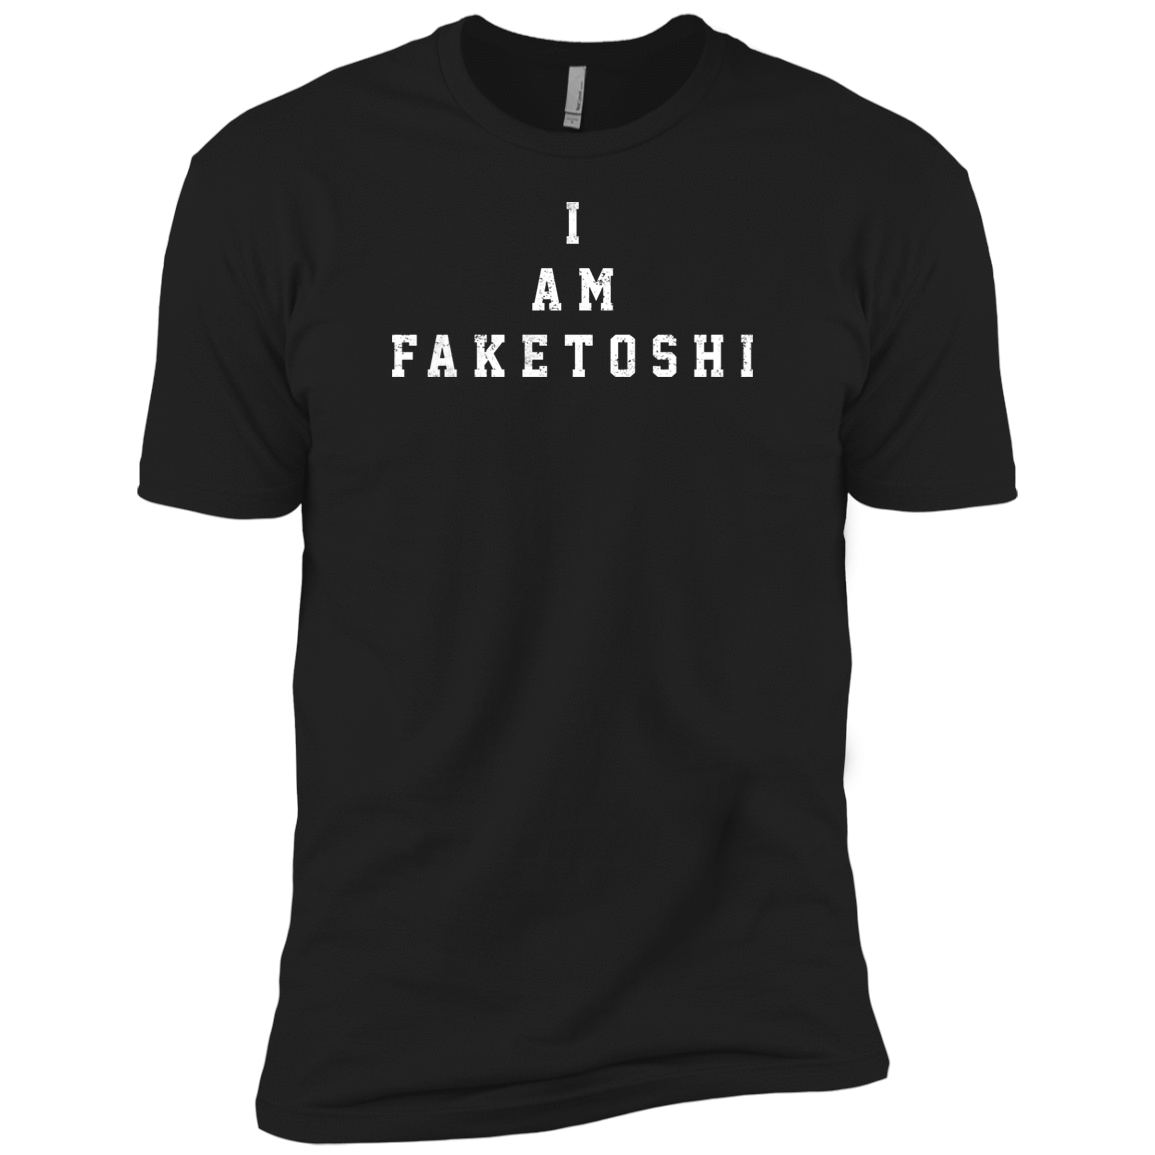 Bitcoin T shirt Black / X-Small I Am Faketoshi T-Shirt